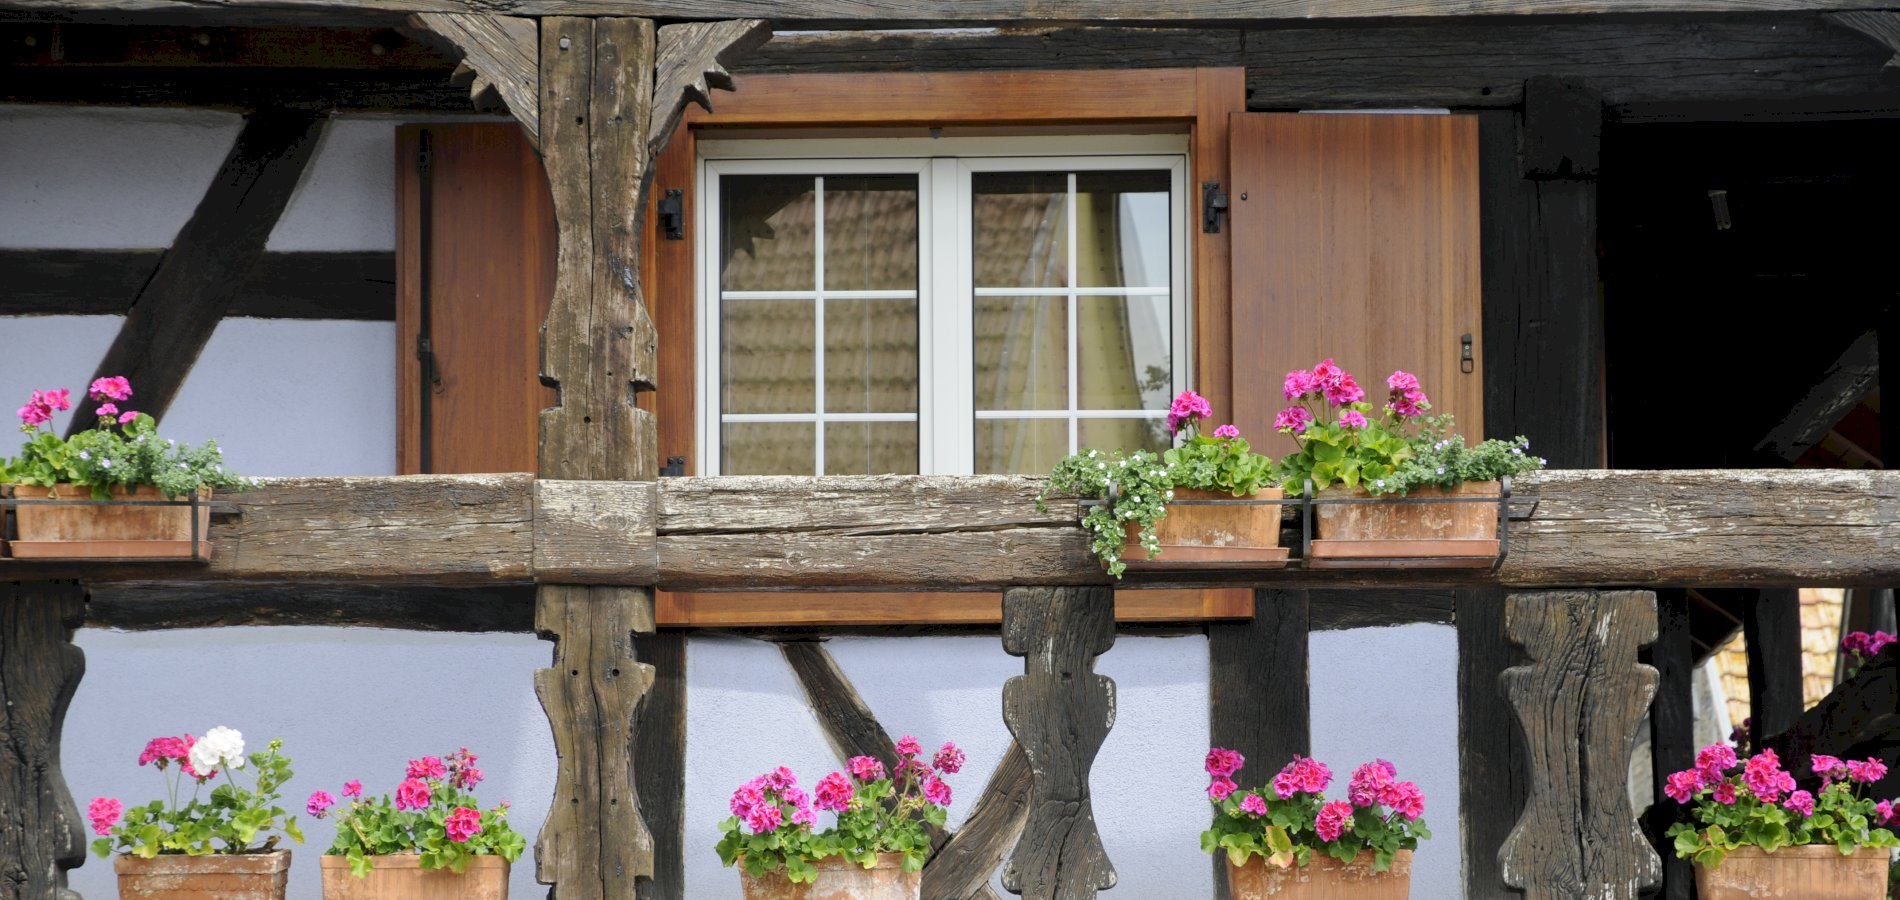 Ophorus Tours - From Colmar to Illhaeusern - Auberge de l'Ill Restaurant - Hotel des Berges Private Transfer